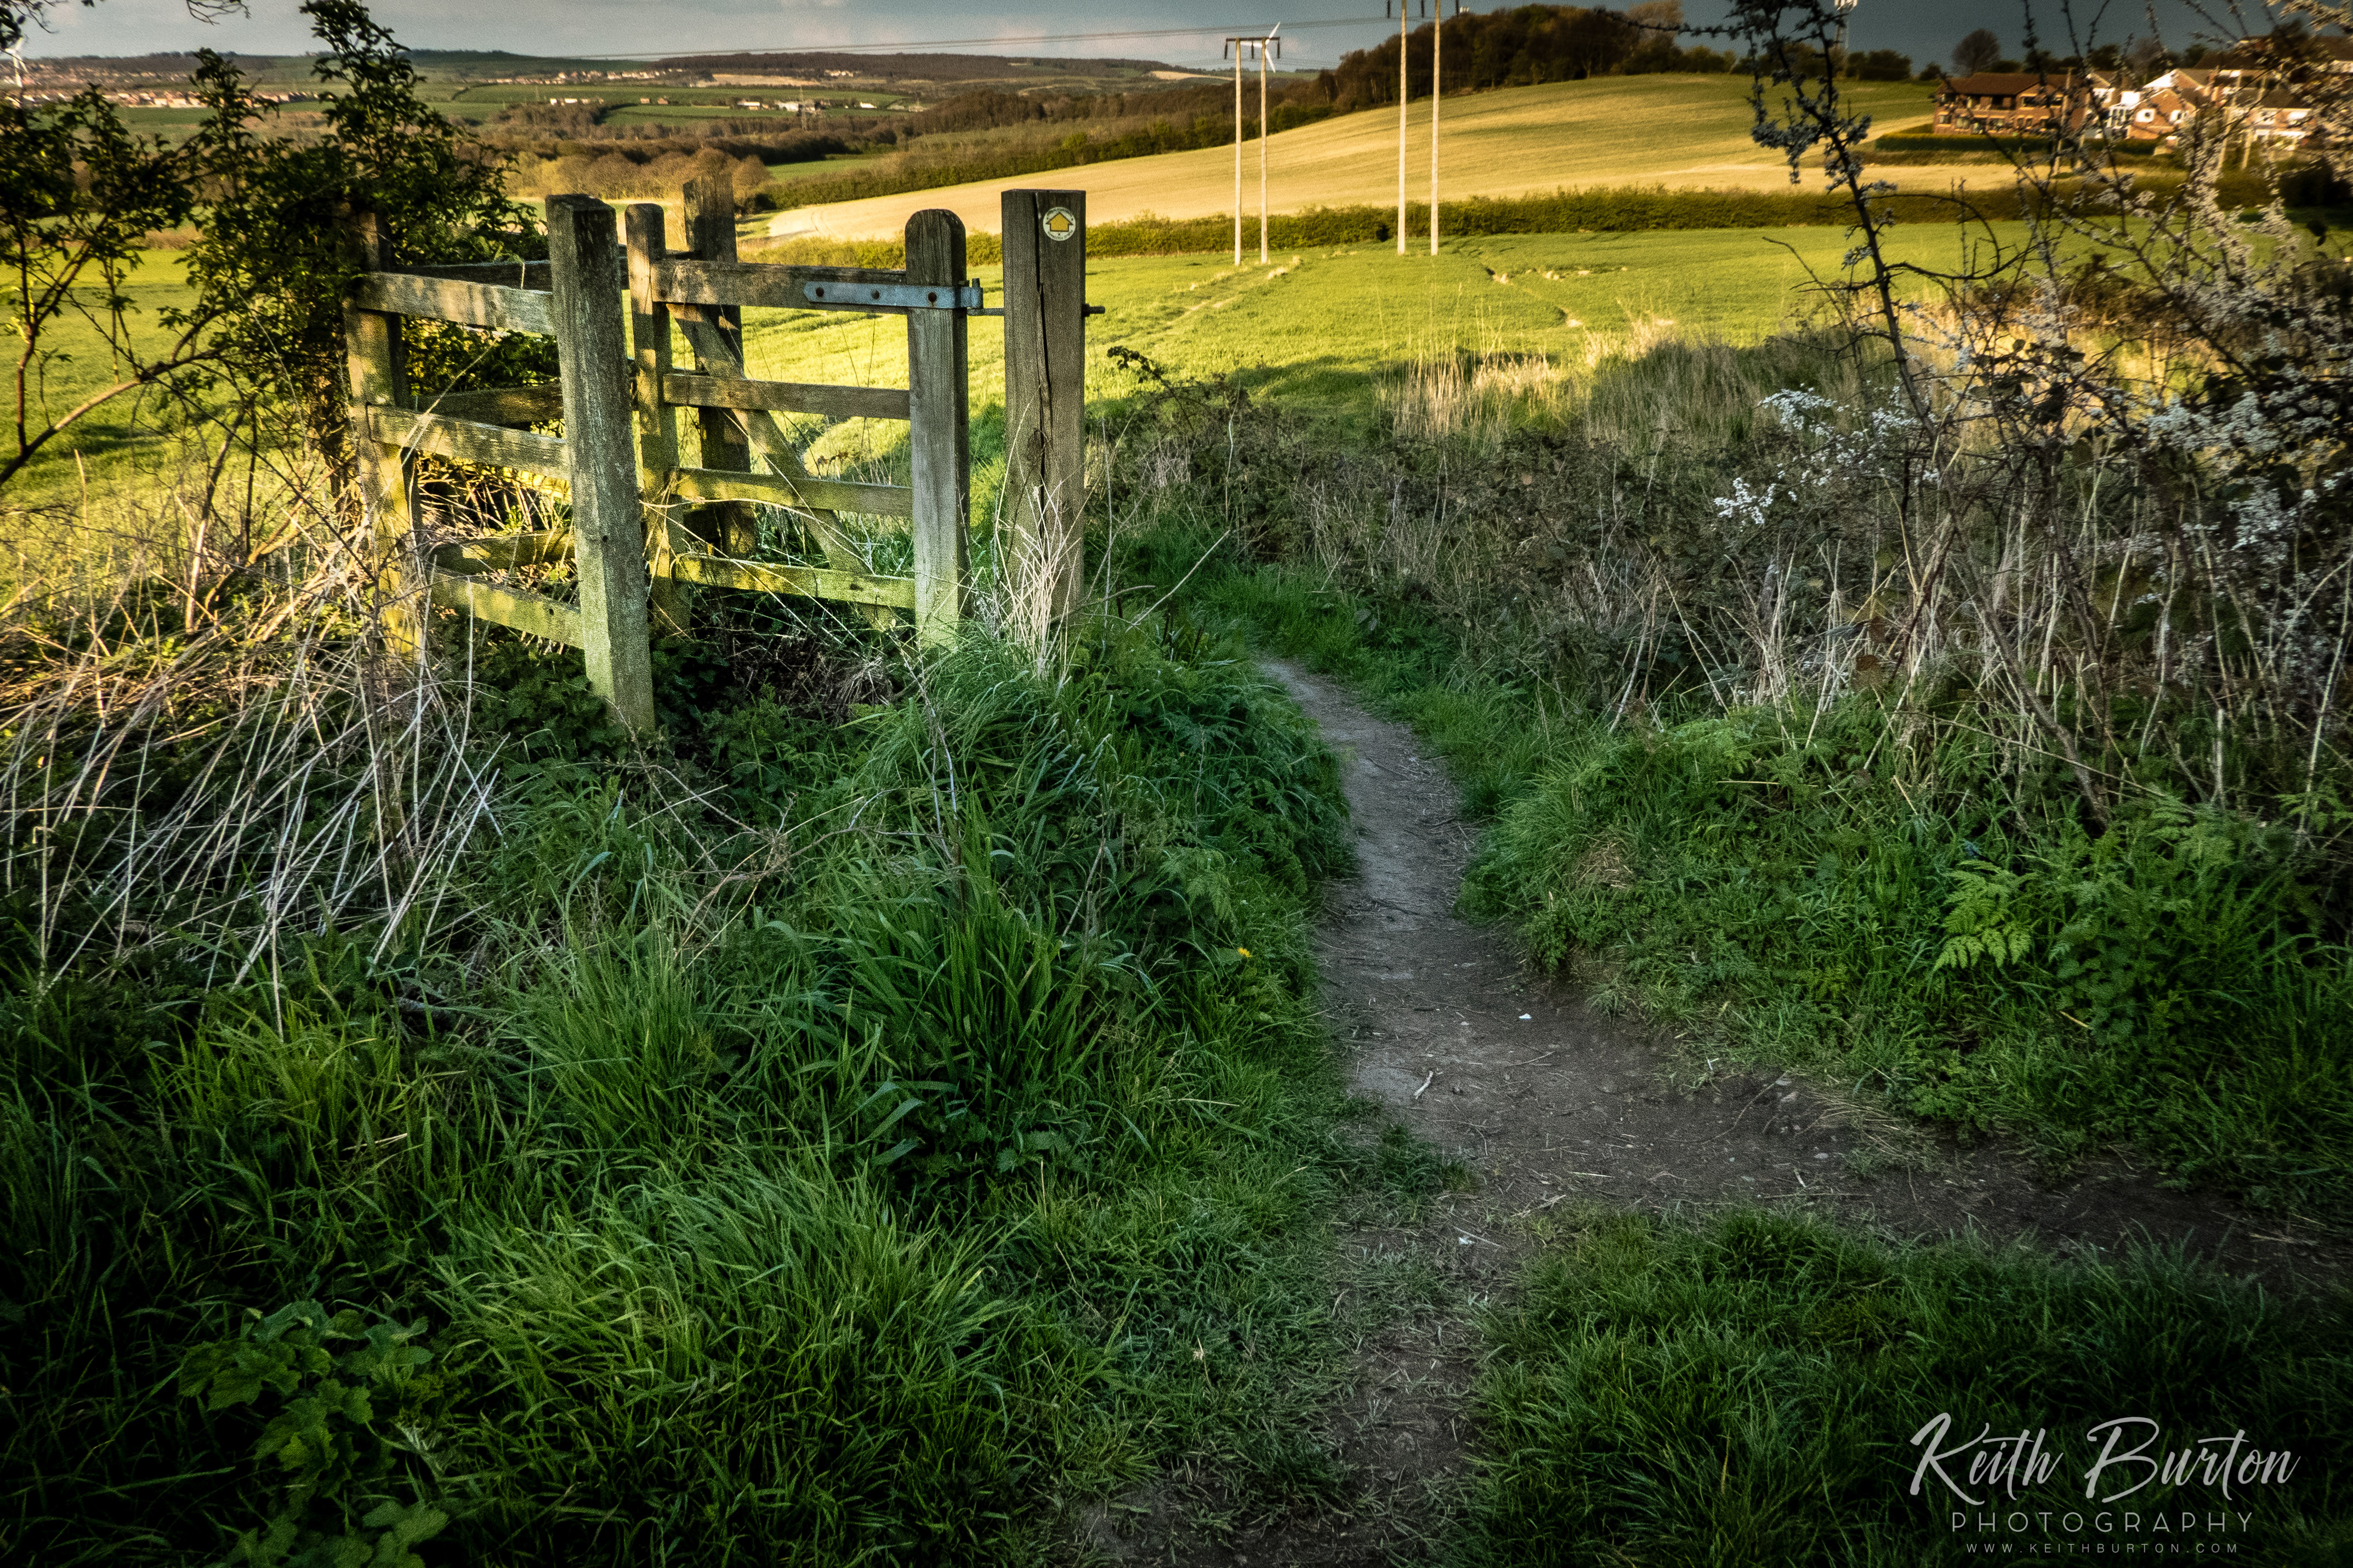 The gate to Mucky Lane